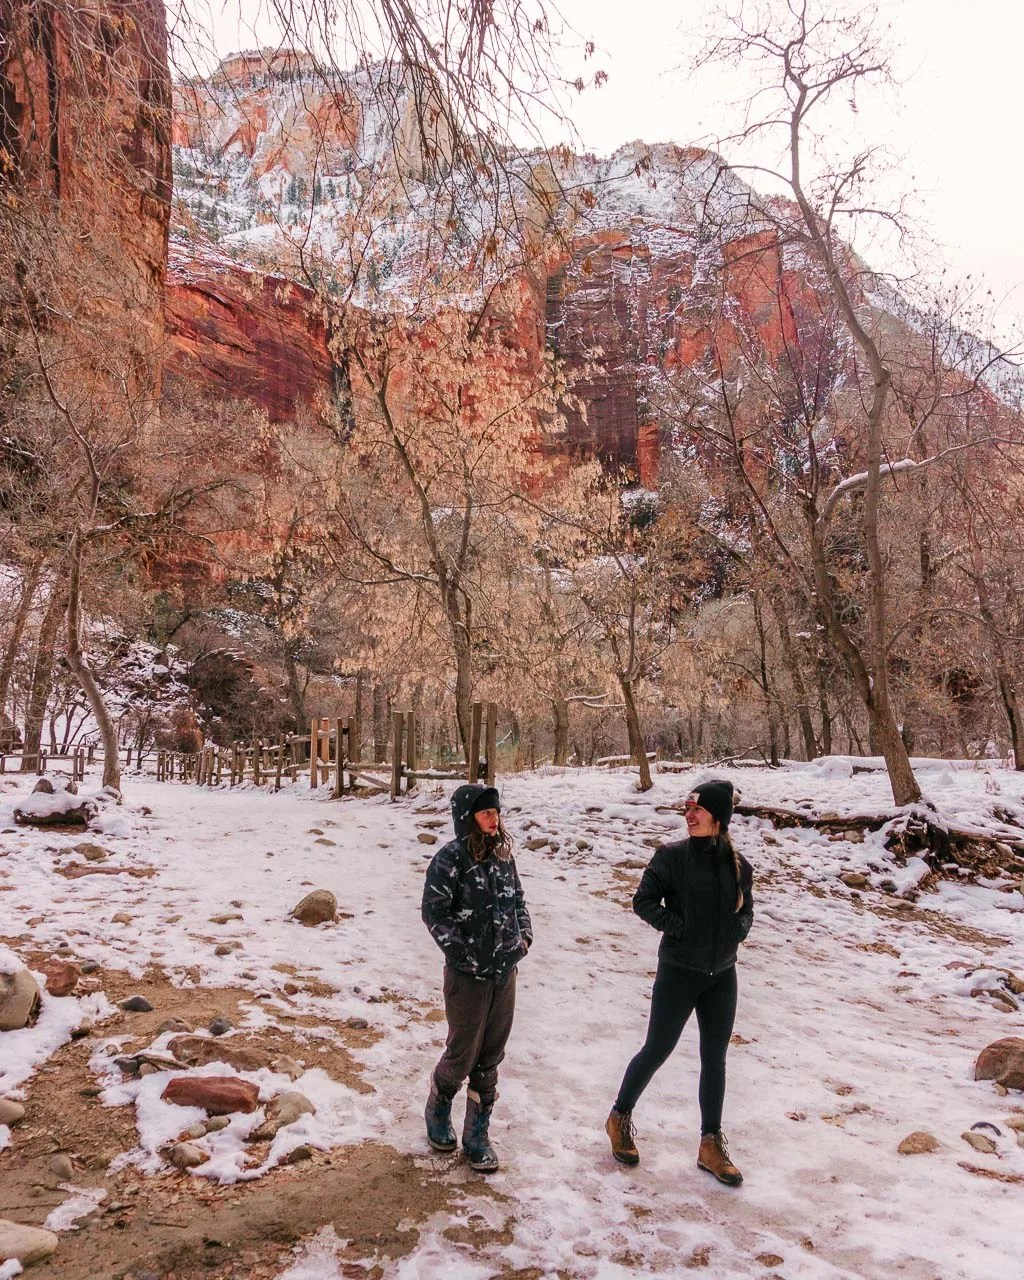 Winter at the Temple of Sinawa in Zion National Park